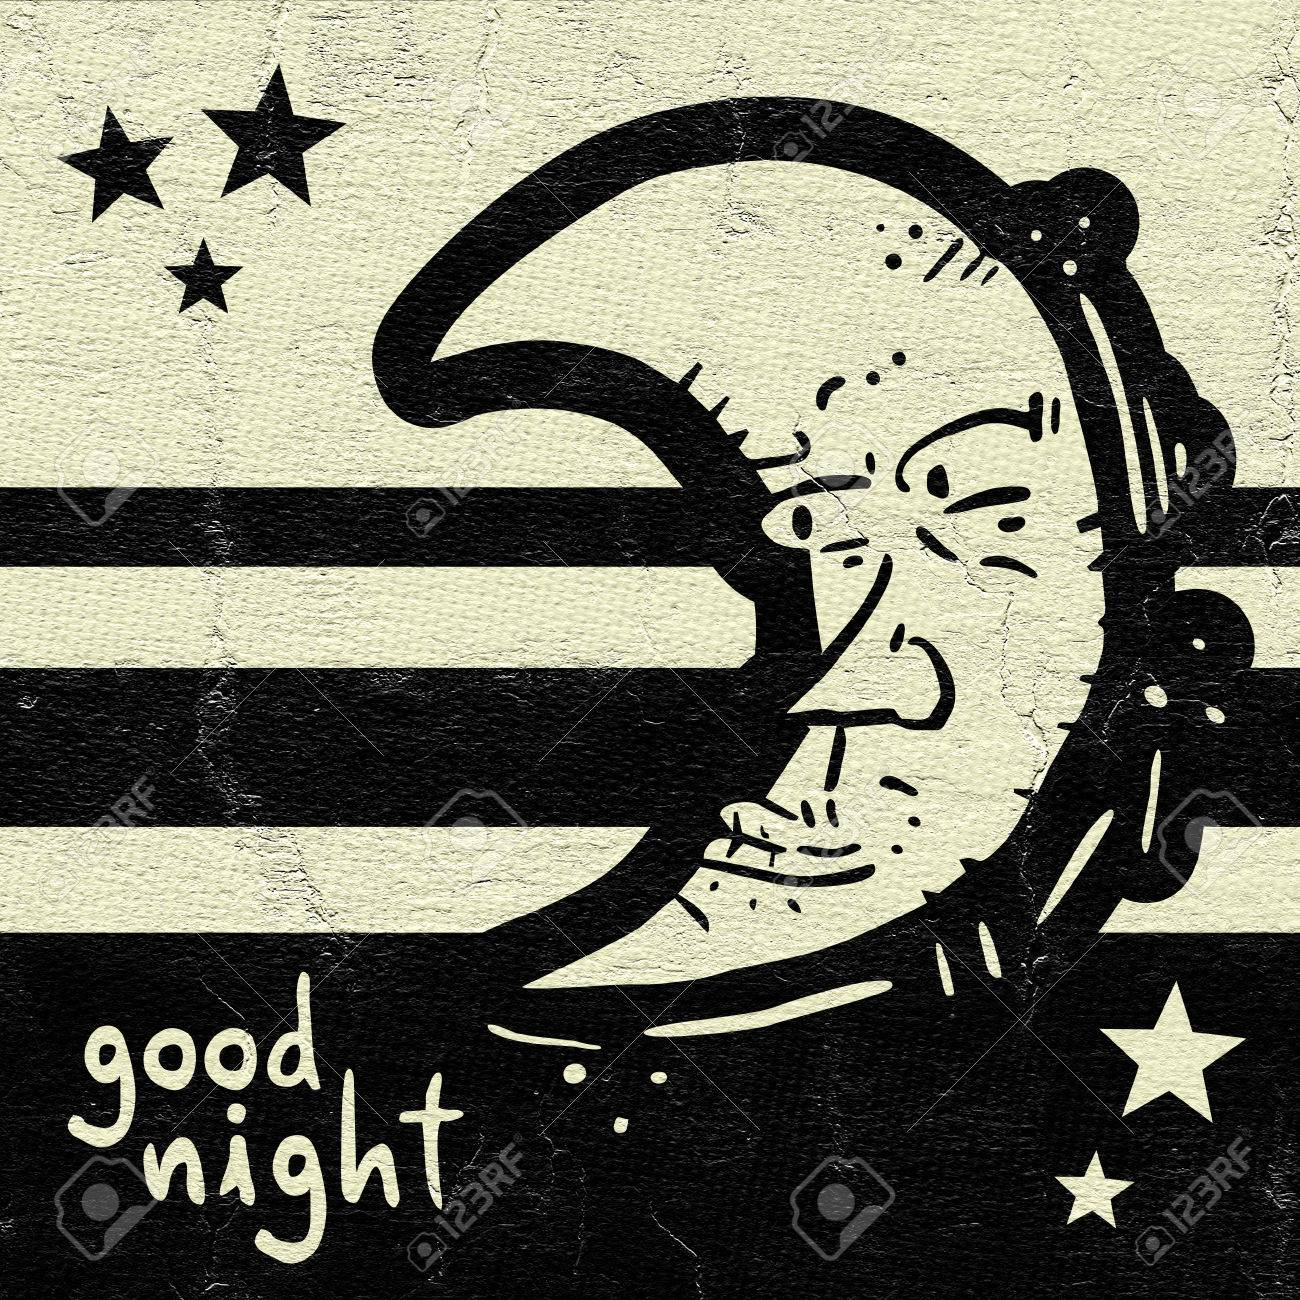 Good Night Symbol Stock Photo Picture And Royalty Free Image Image